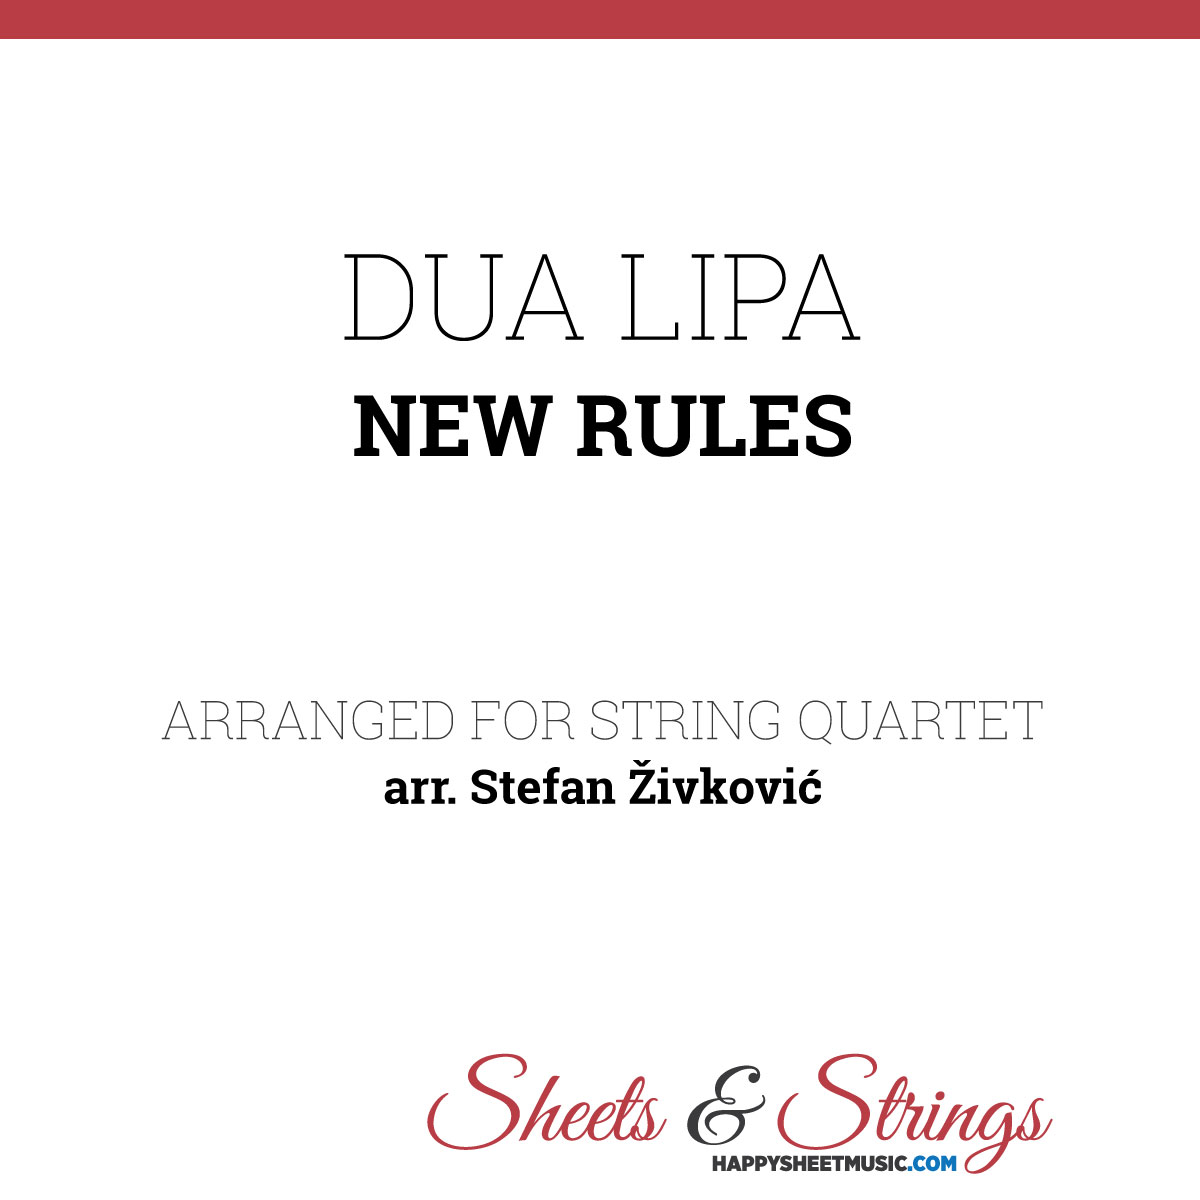 New Rules Dua Lipa: Sheet Music For String Quartet